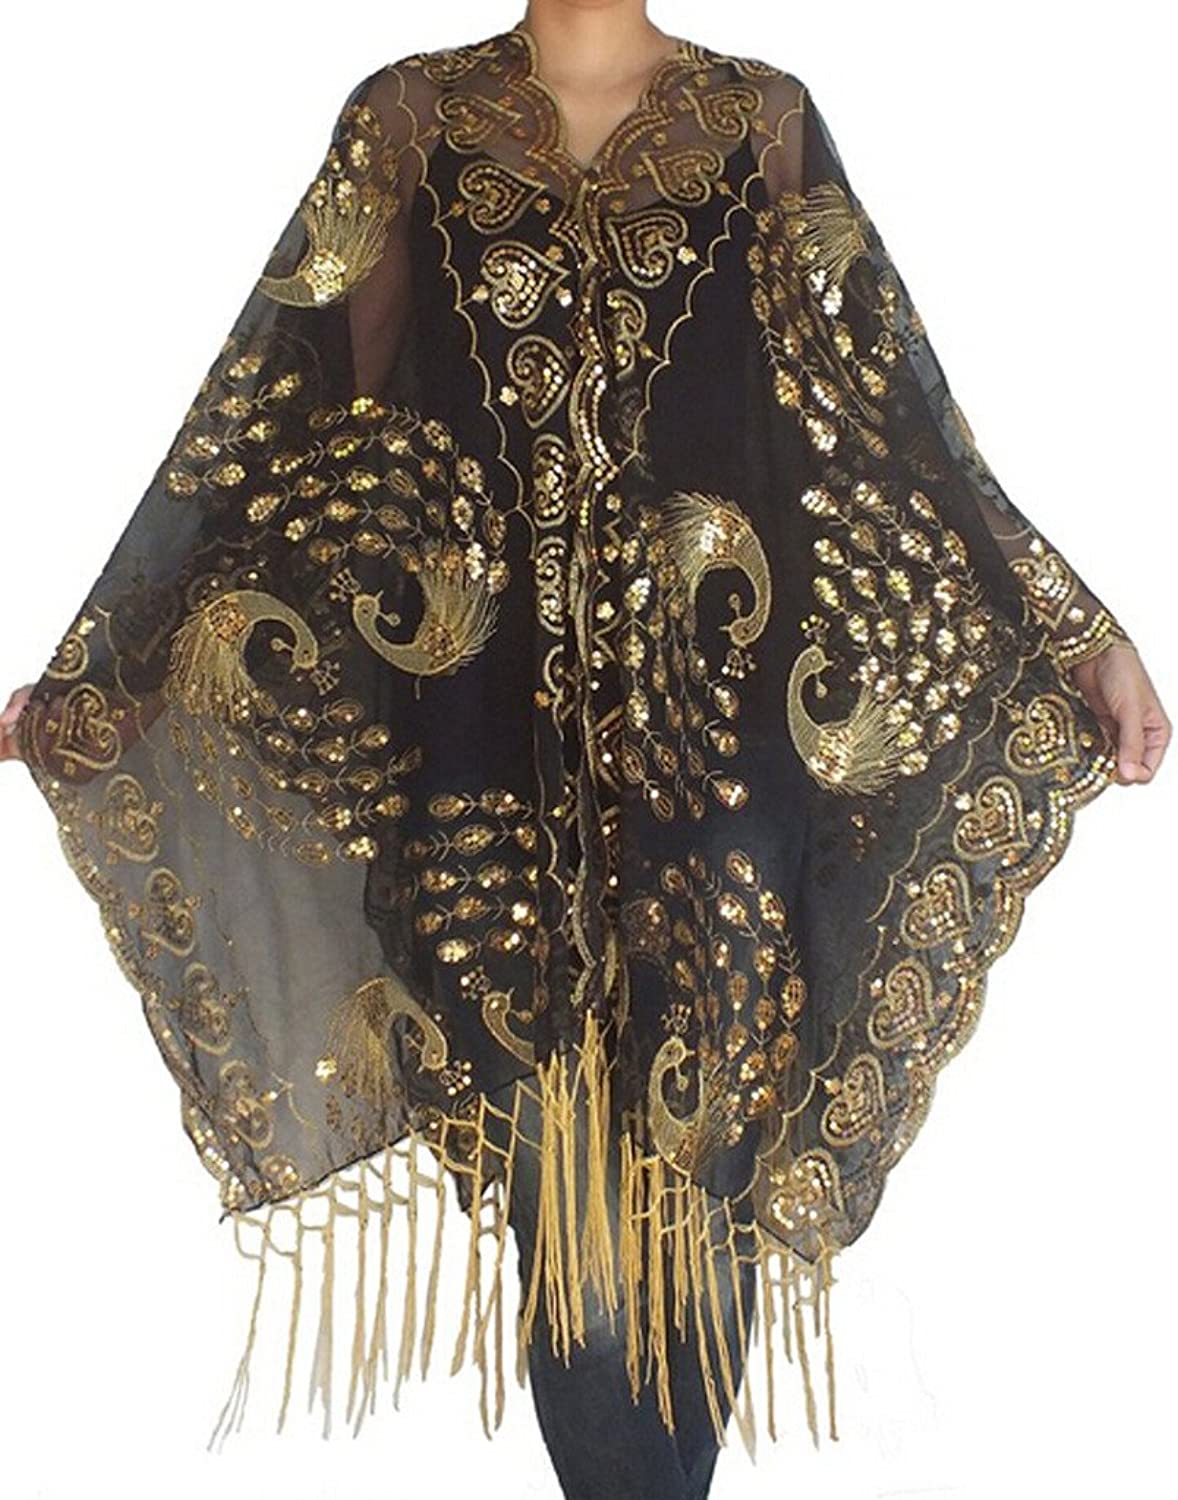 Vintage Coats & Jackets | Retro Coats and Jackets  Peacock Phoenix Embroidery Sequins Wedding Scarf Shawls $19.99 AT vintagedancer.com